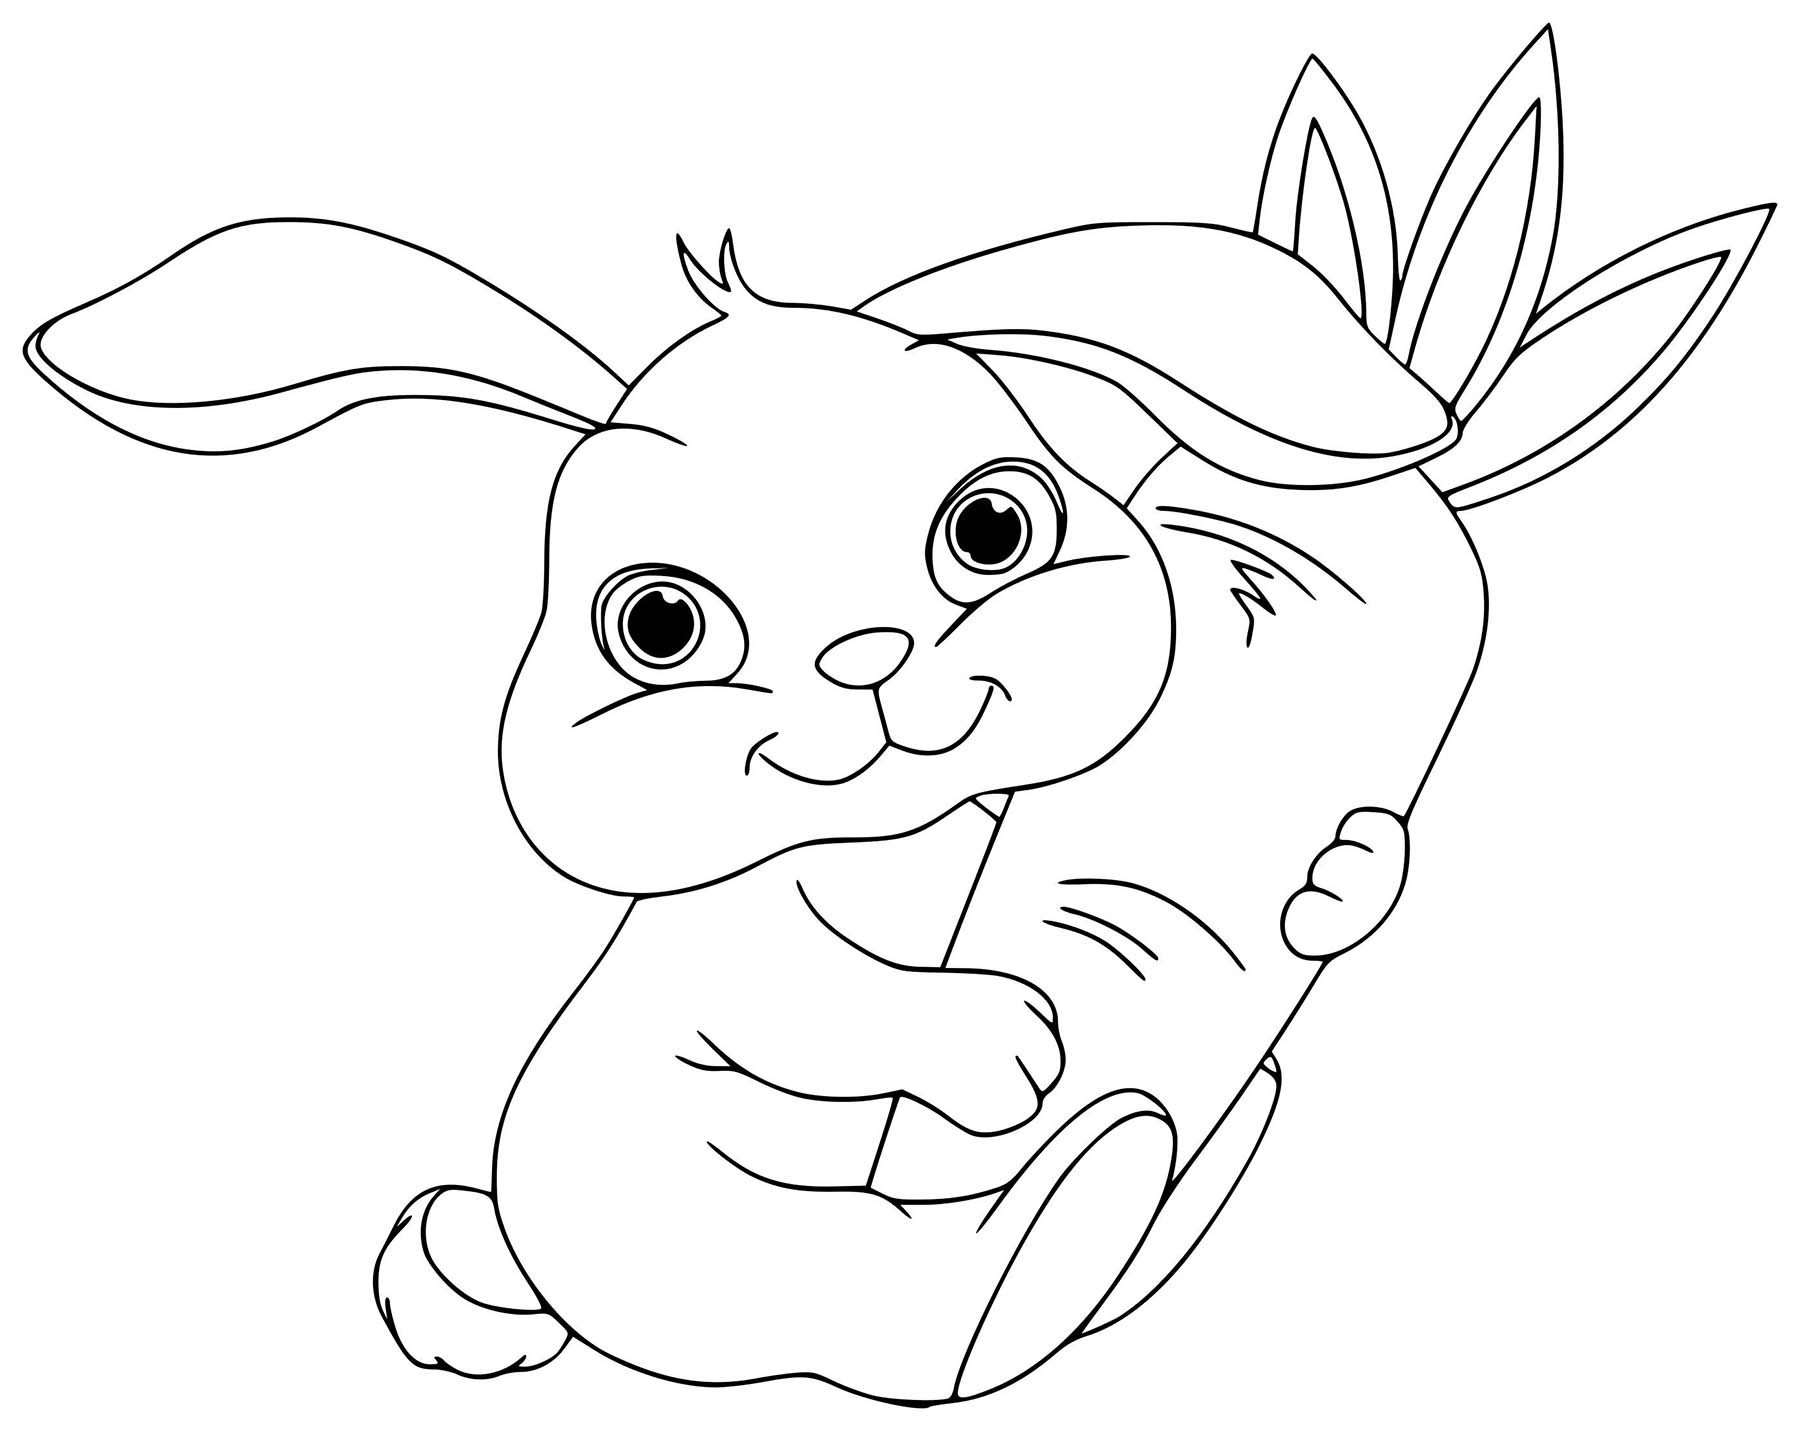 rabbit coloring image bunny coloring pages best coloring pages for kids coloring image rabbit